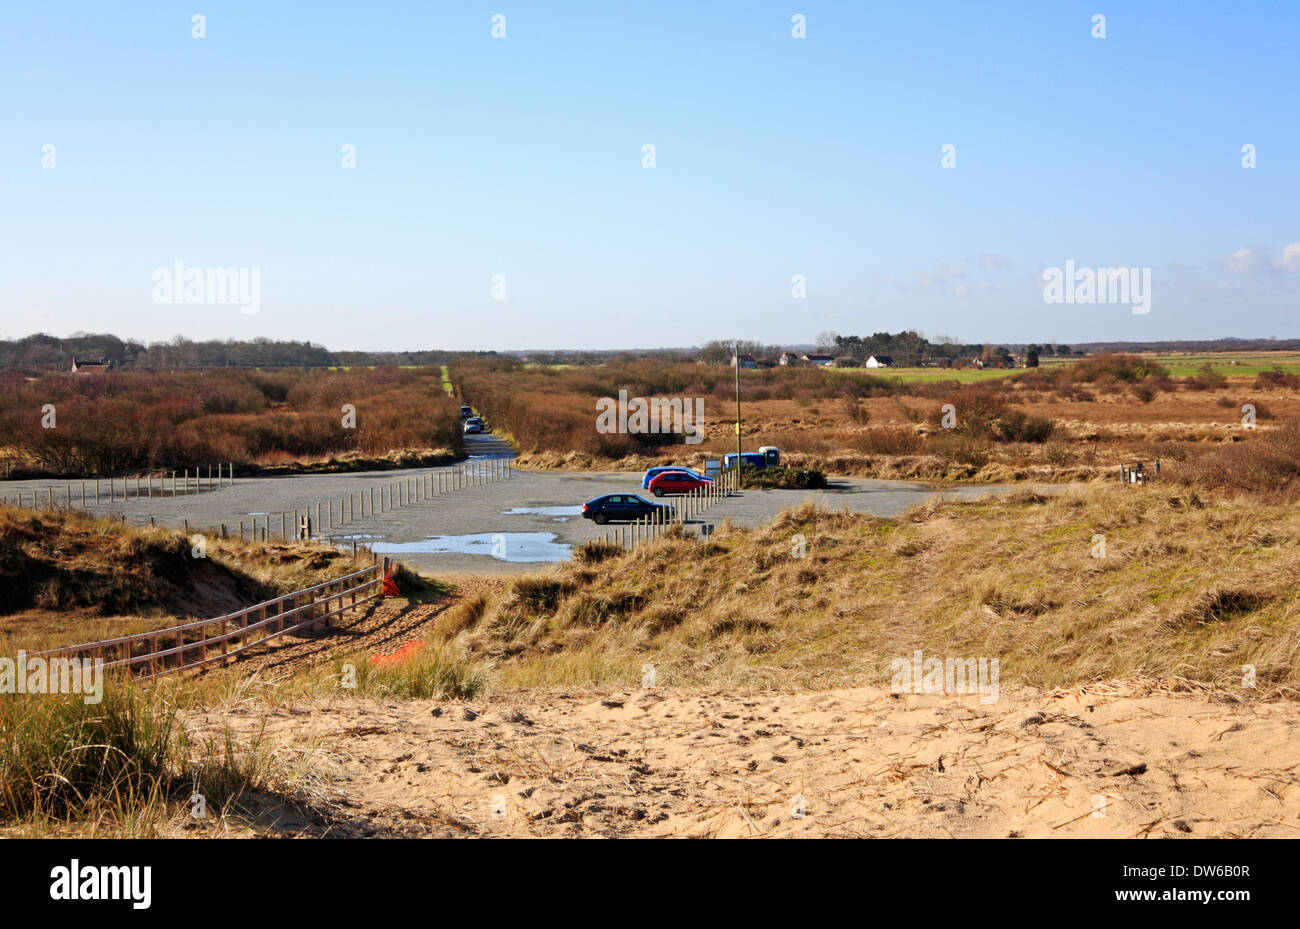 A view of the car park at Horsey Gap, Norfolk, England, United Kingdom. - Stock Image